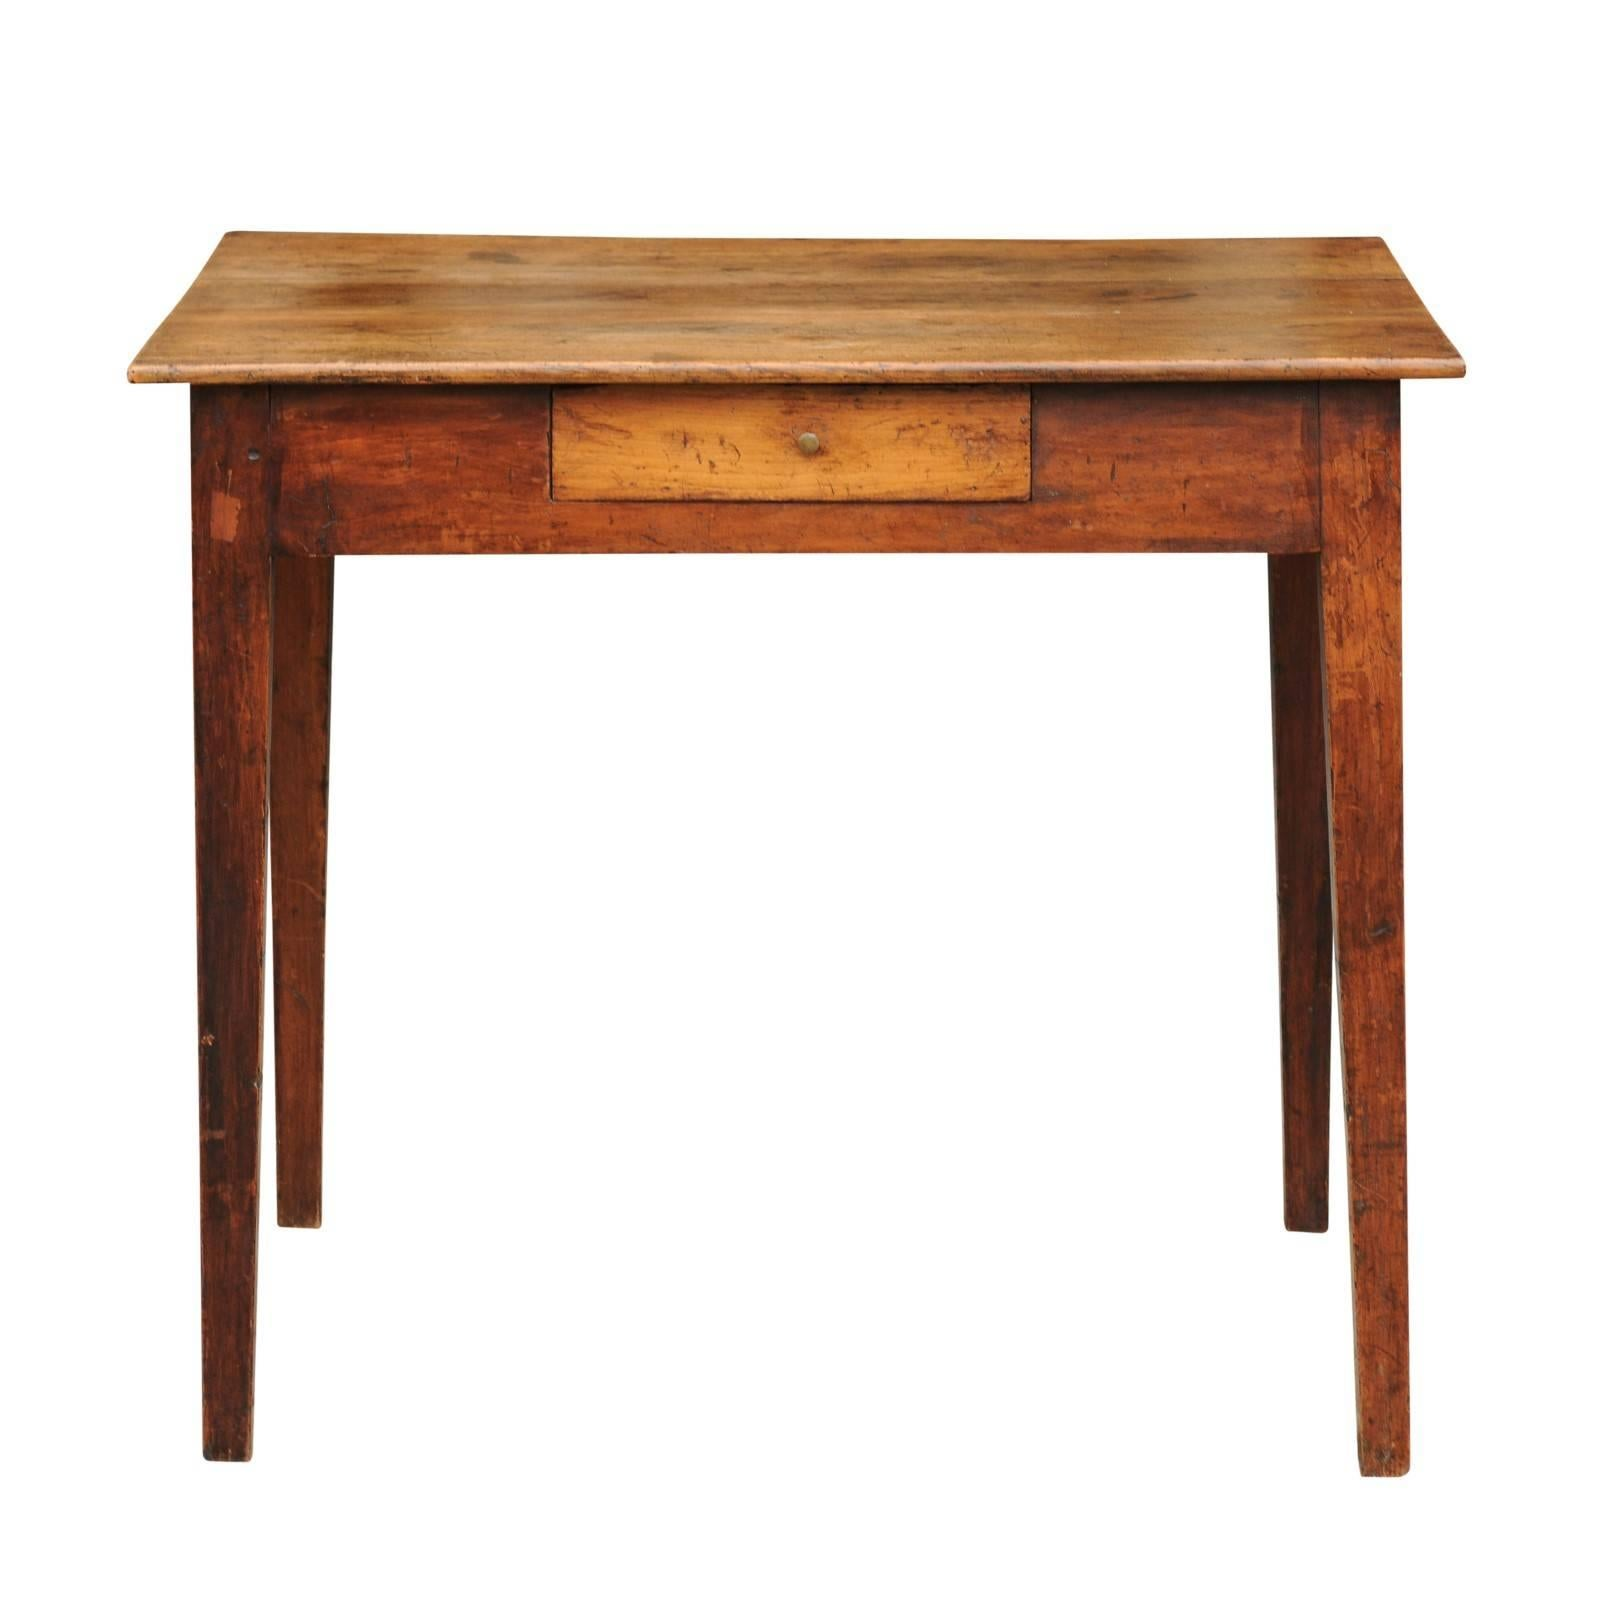 Delicieux Rustic French Elm Side Table With Single Drawer And Tapered Legs, Circa  1870 For Sale